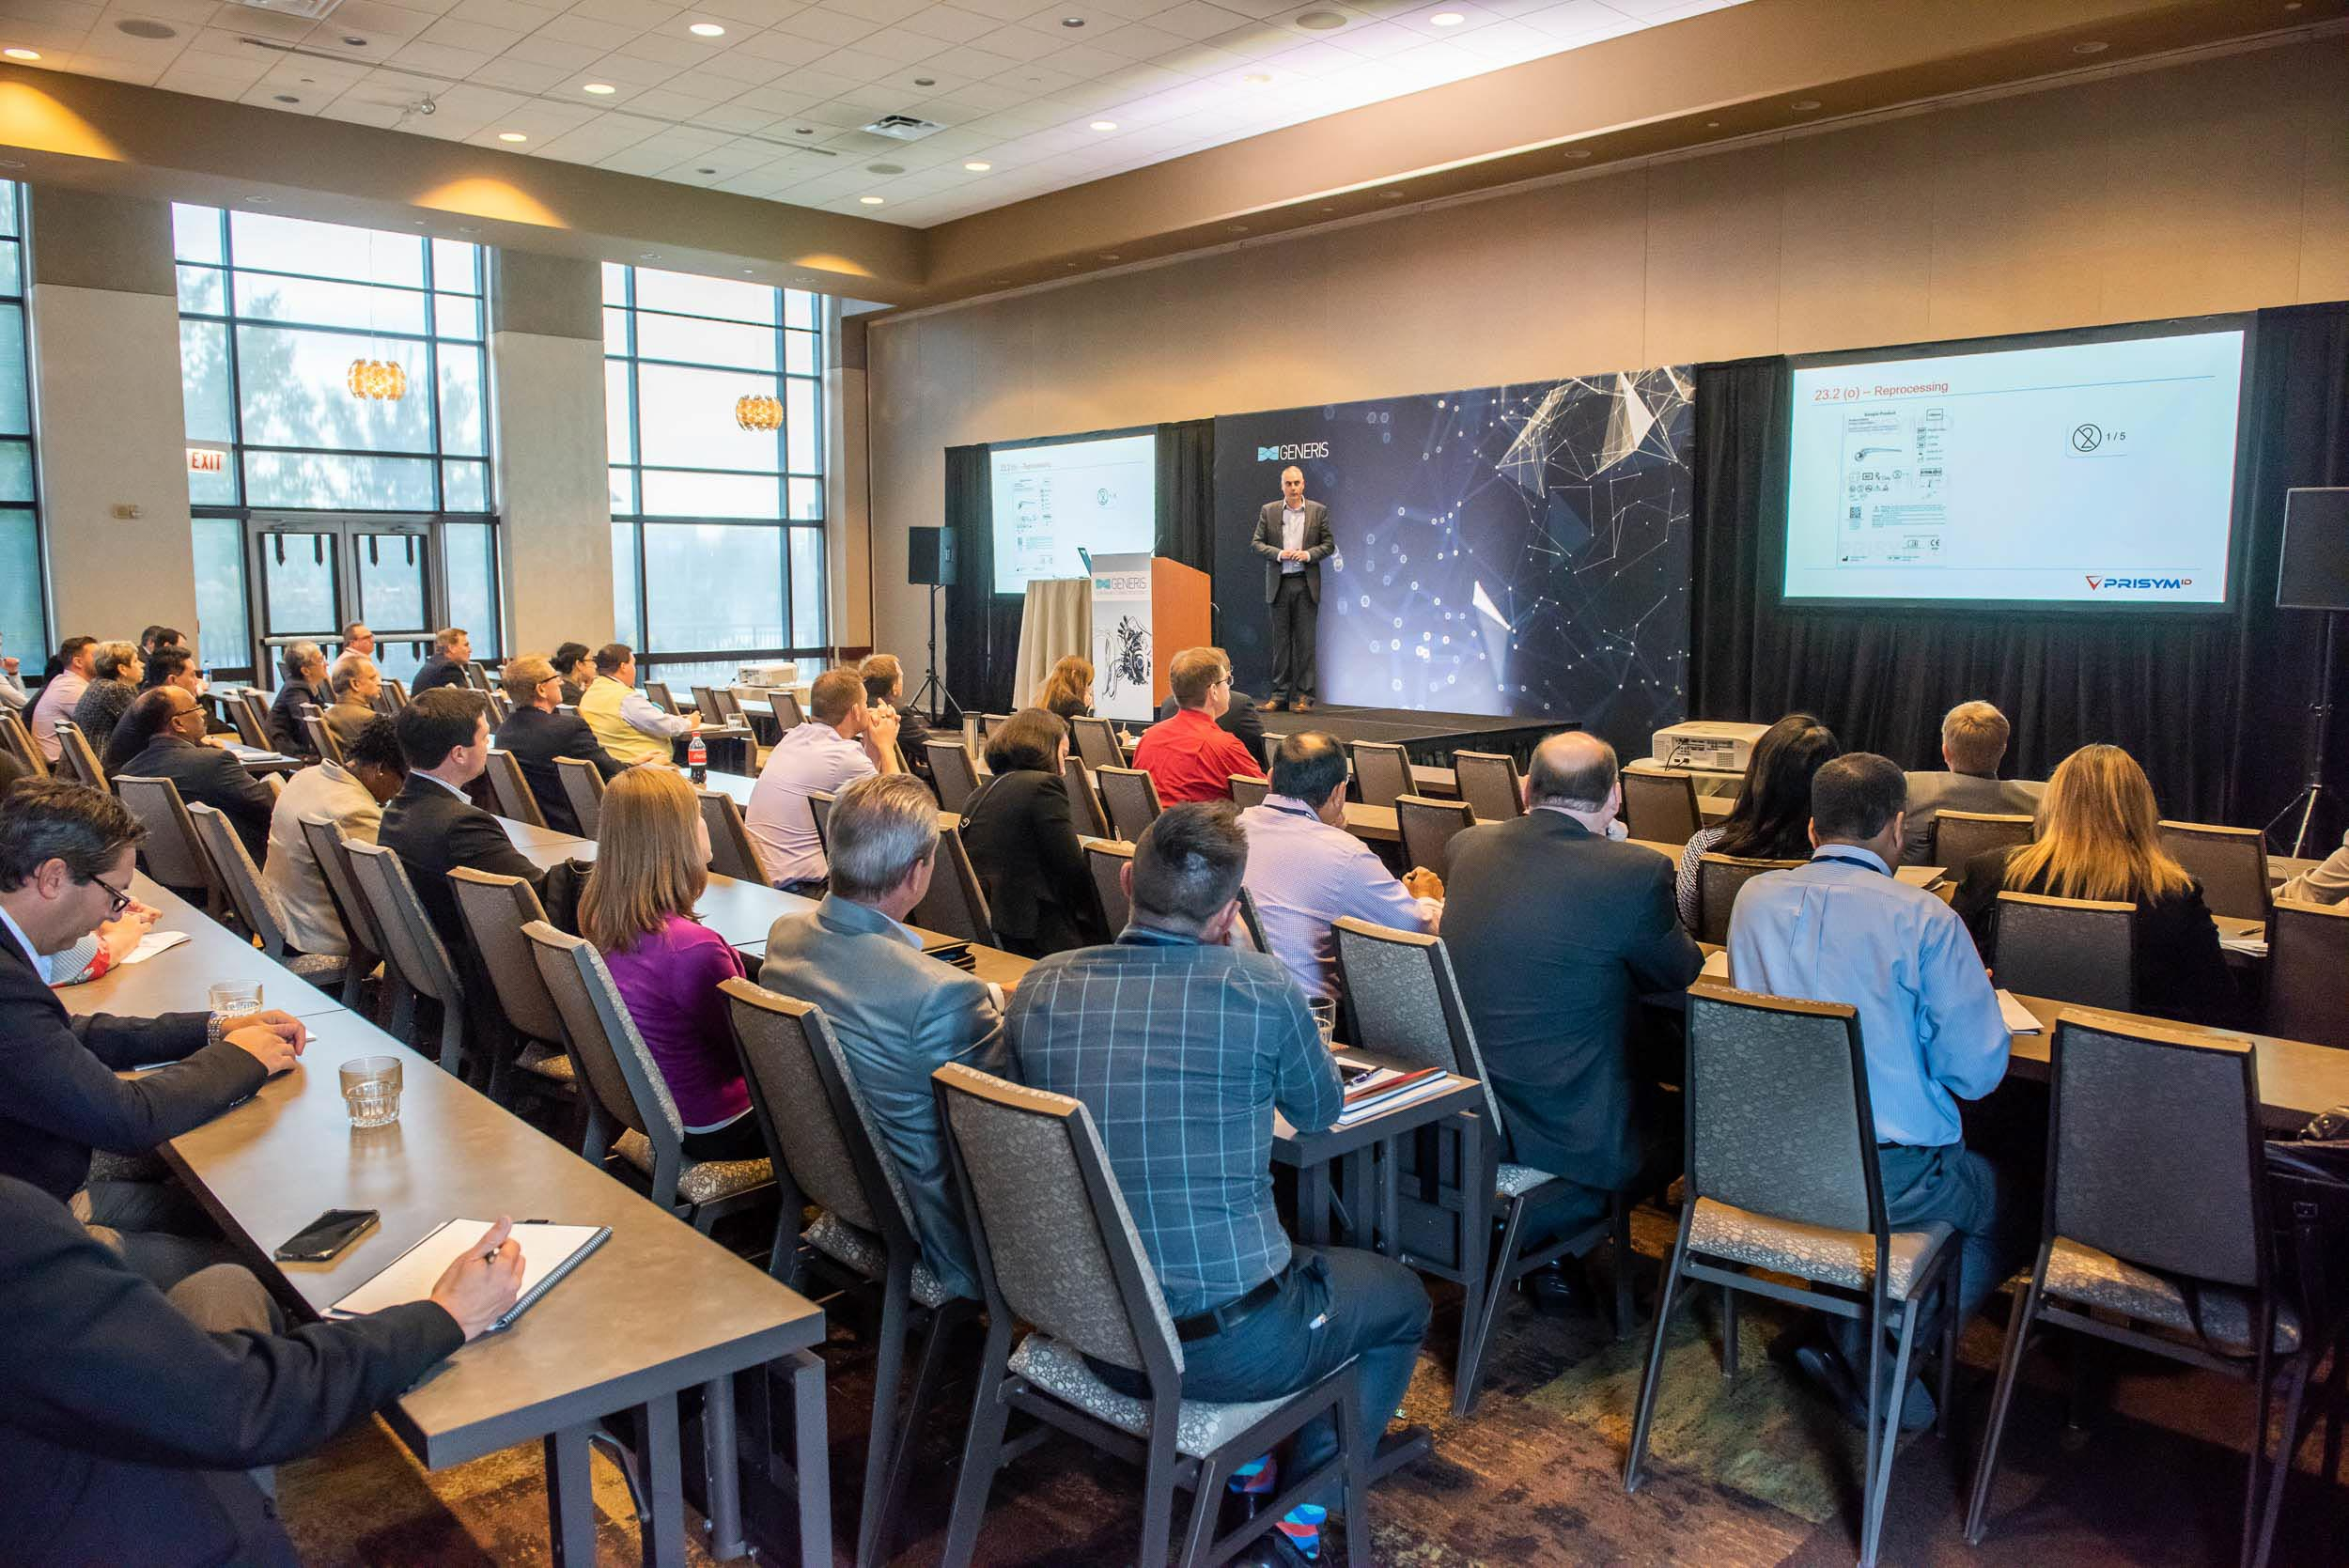 181024 - American Medical Device Summit - mark campbell photography-270_Resized_Resized.jpg